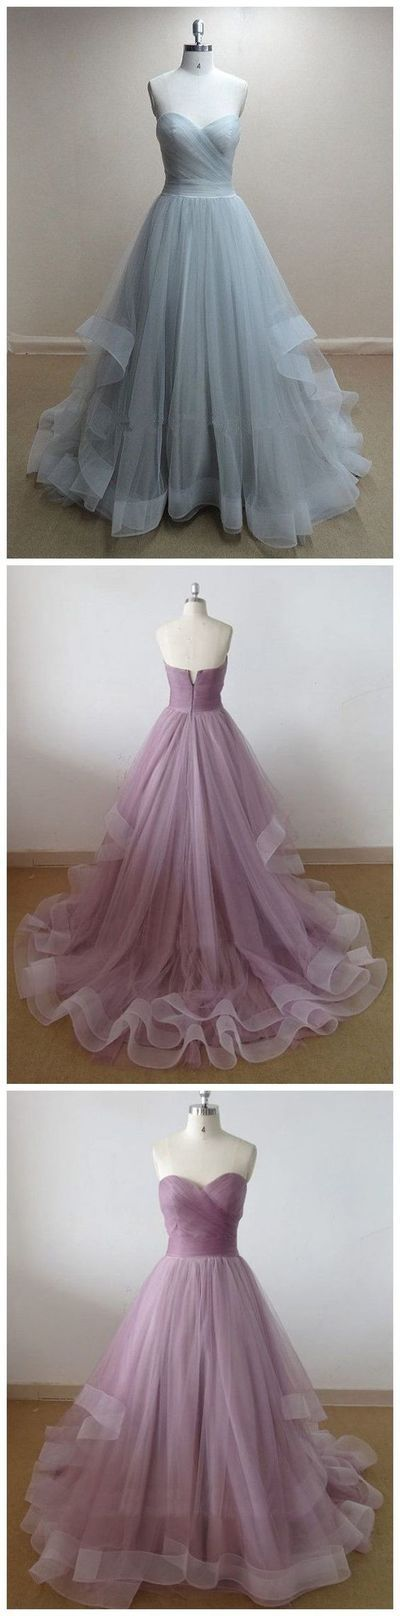 Sweetheart Layered Organza A Line Maxi Sexy Party prom dresses 2017 new style  fashion evening gowns for teens girls